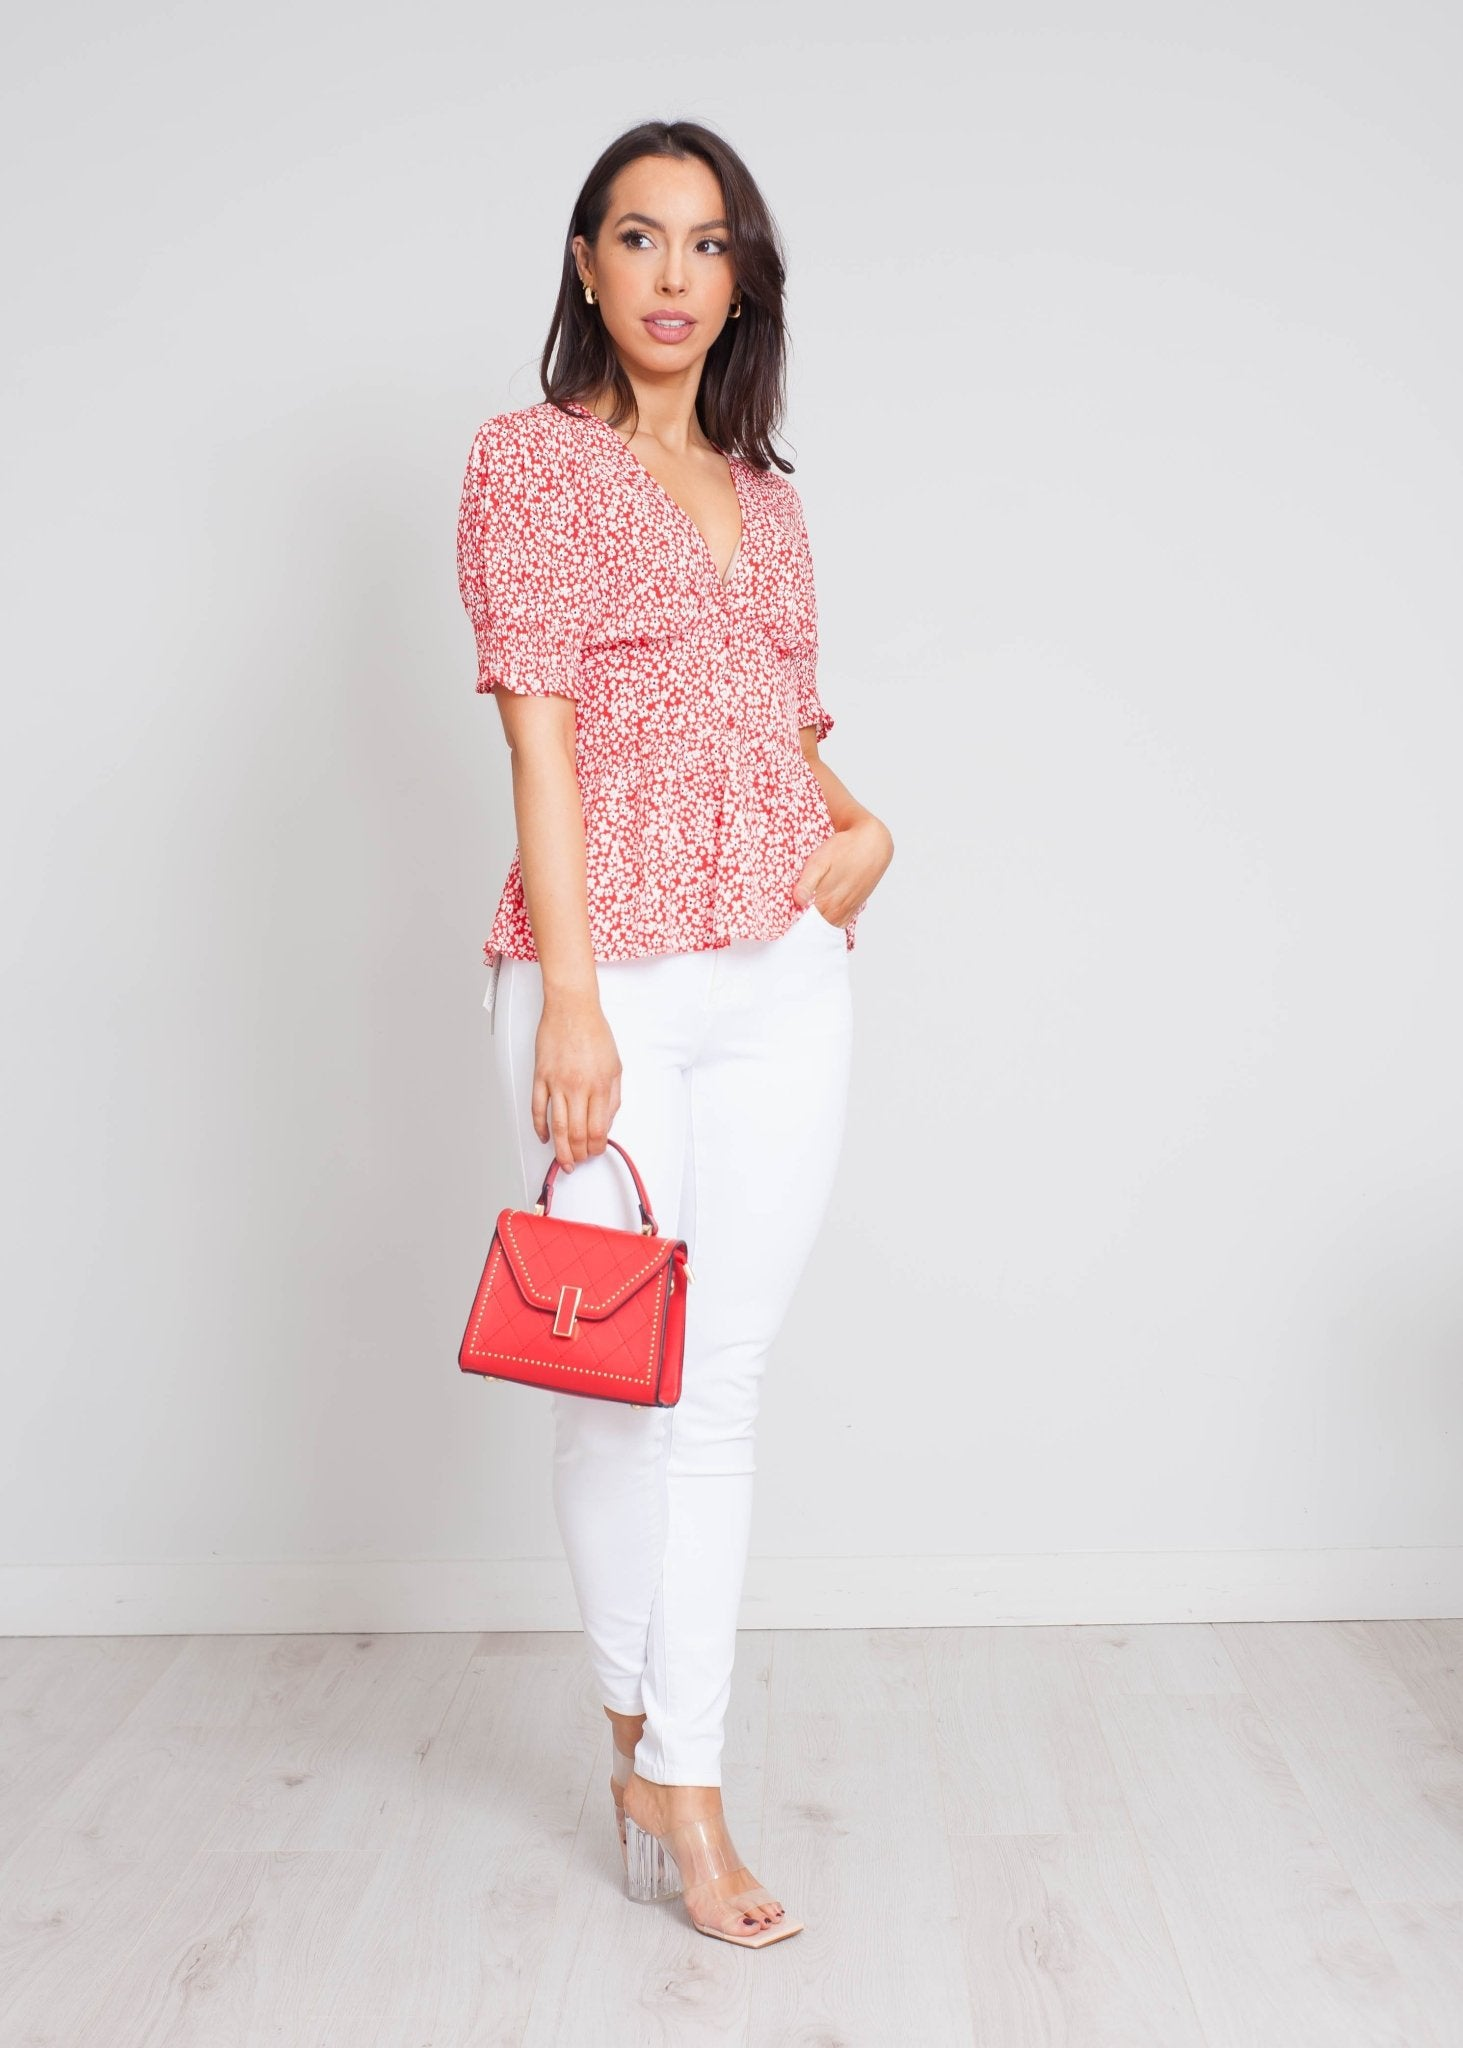 Freya Floral Blouse In Red - The Walk in Wardrobe